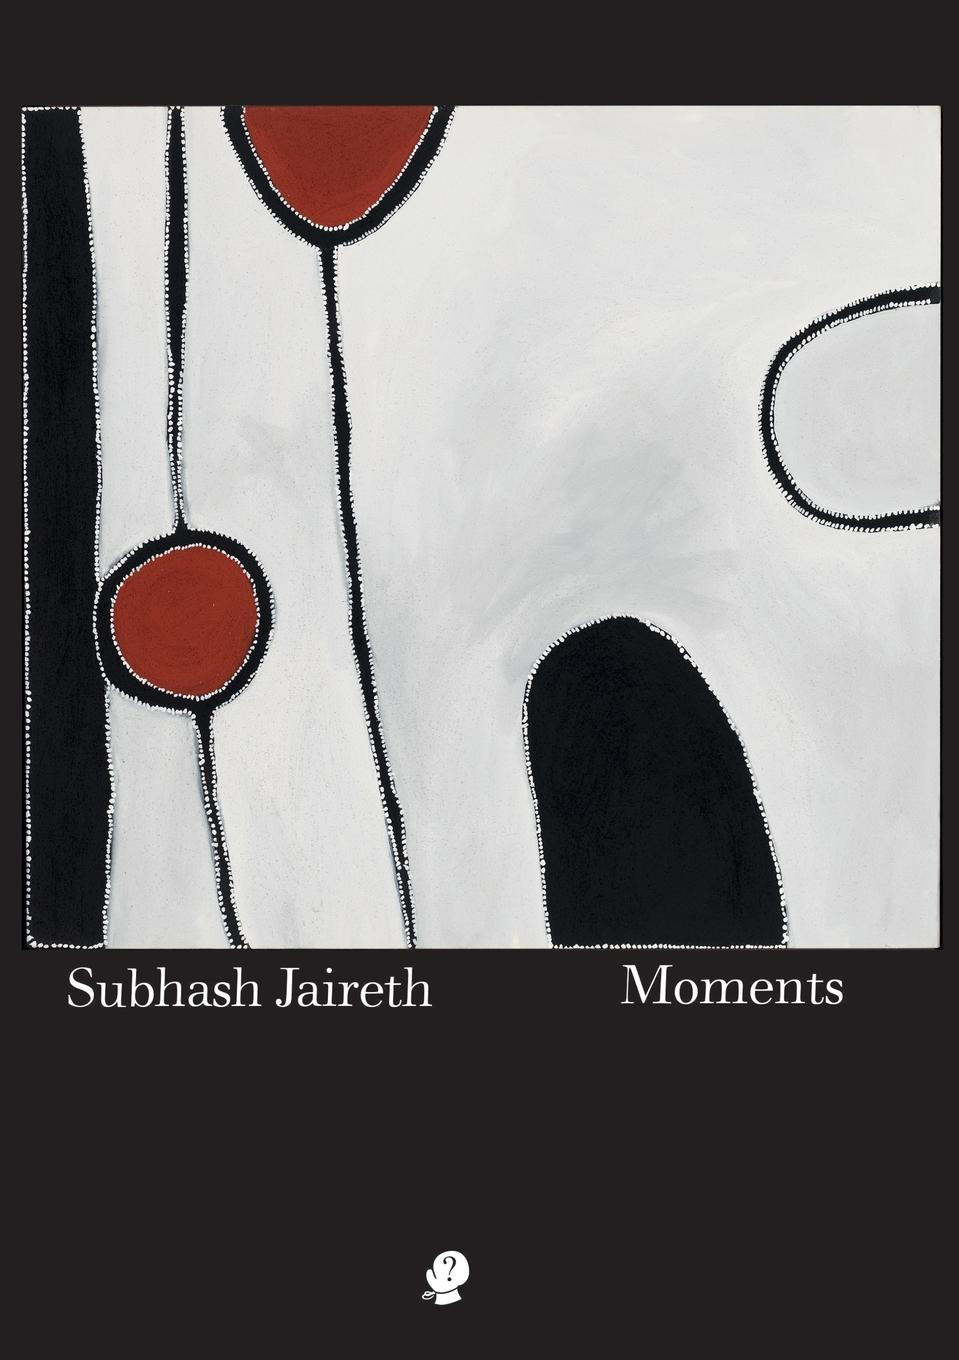 Subhash Jaireth Moments live in the moment